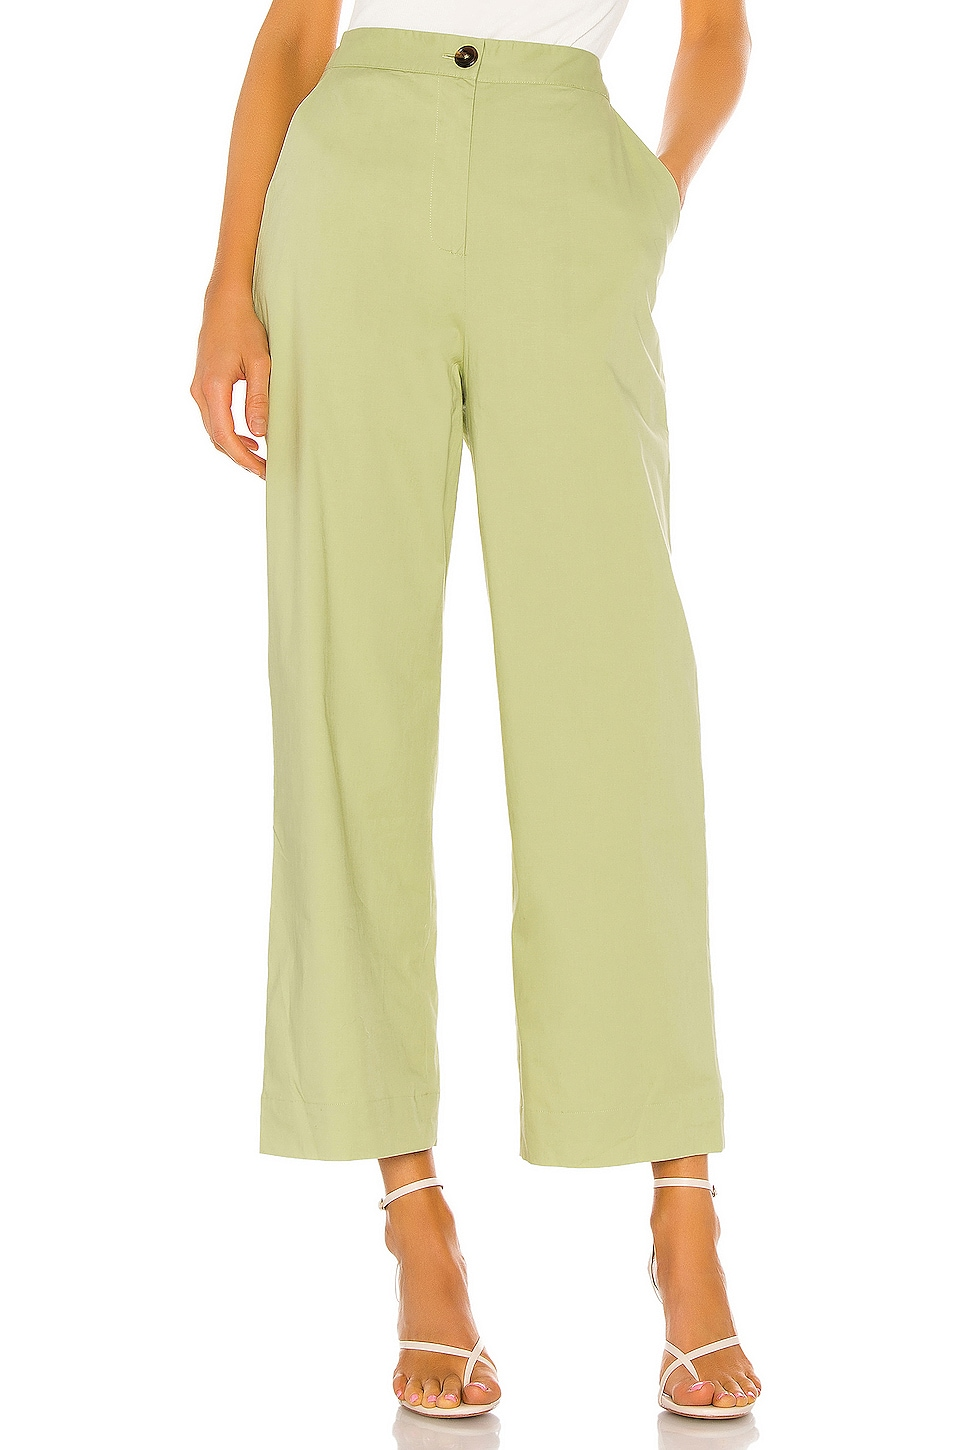 House of Harlow 1960 x REVOLVE Jurie Pant in Pistachio